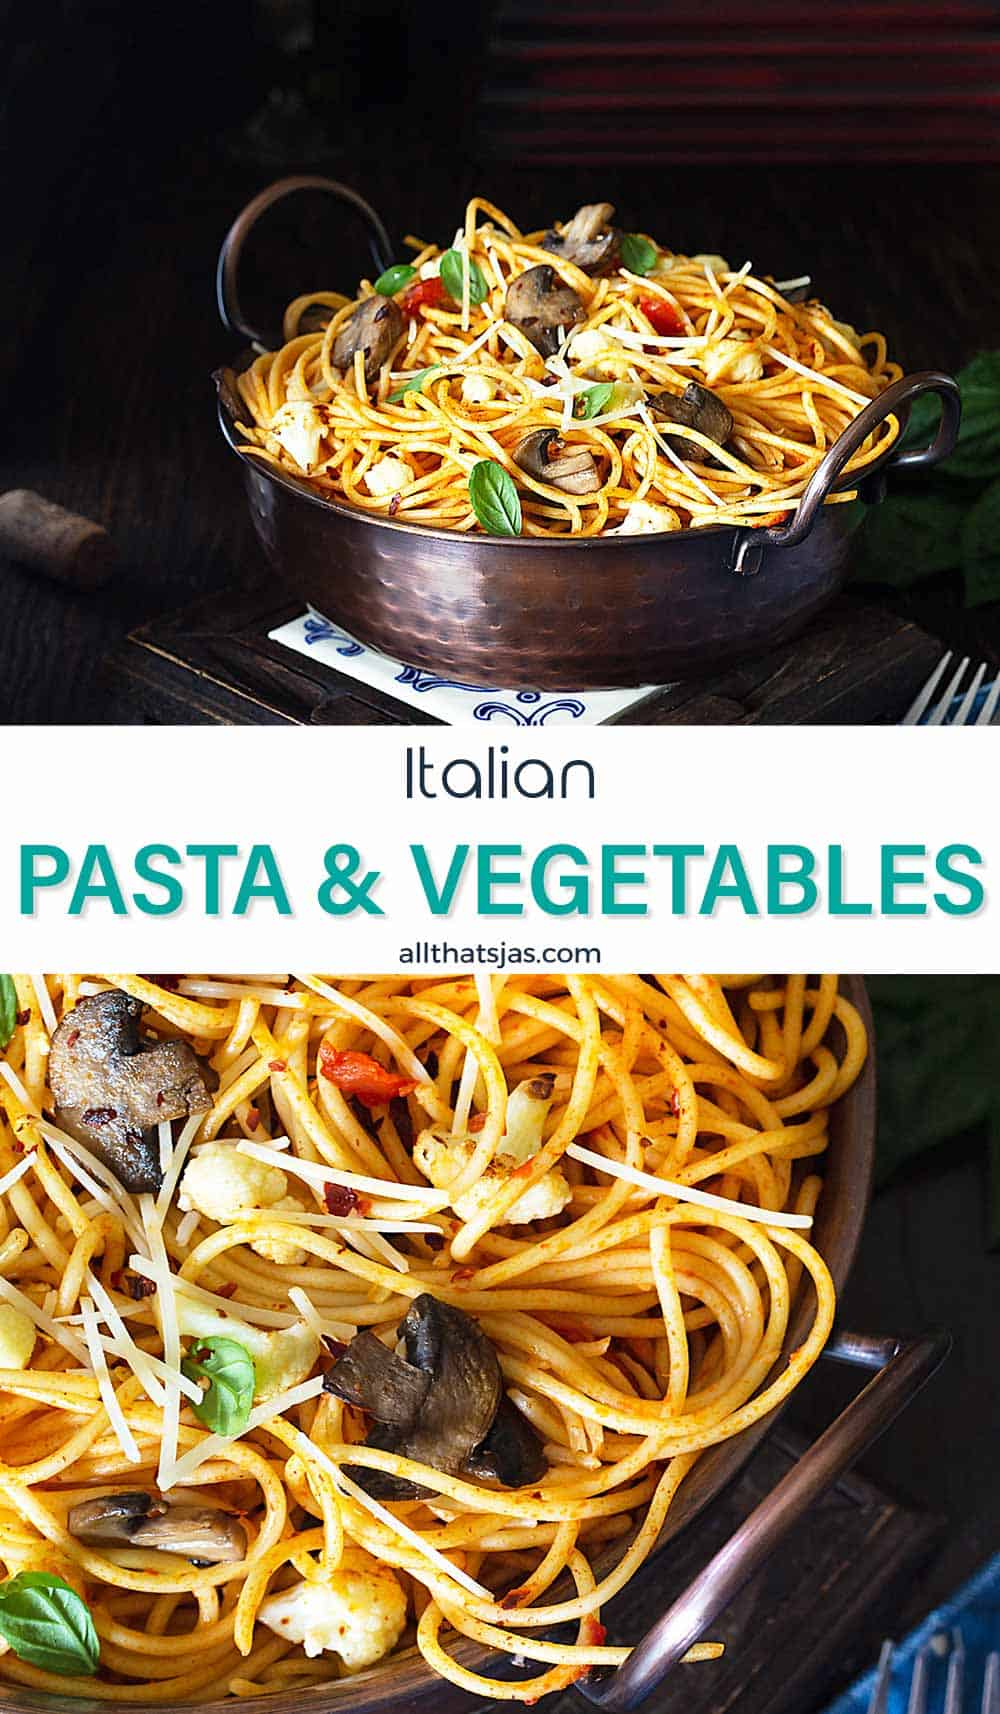 Two photo image with spaghetti dish and text overlay in the middle